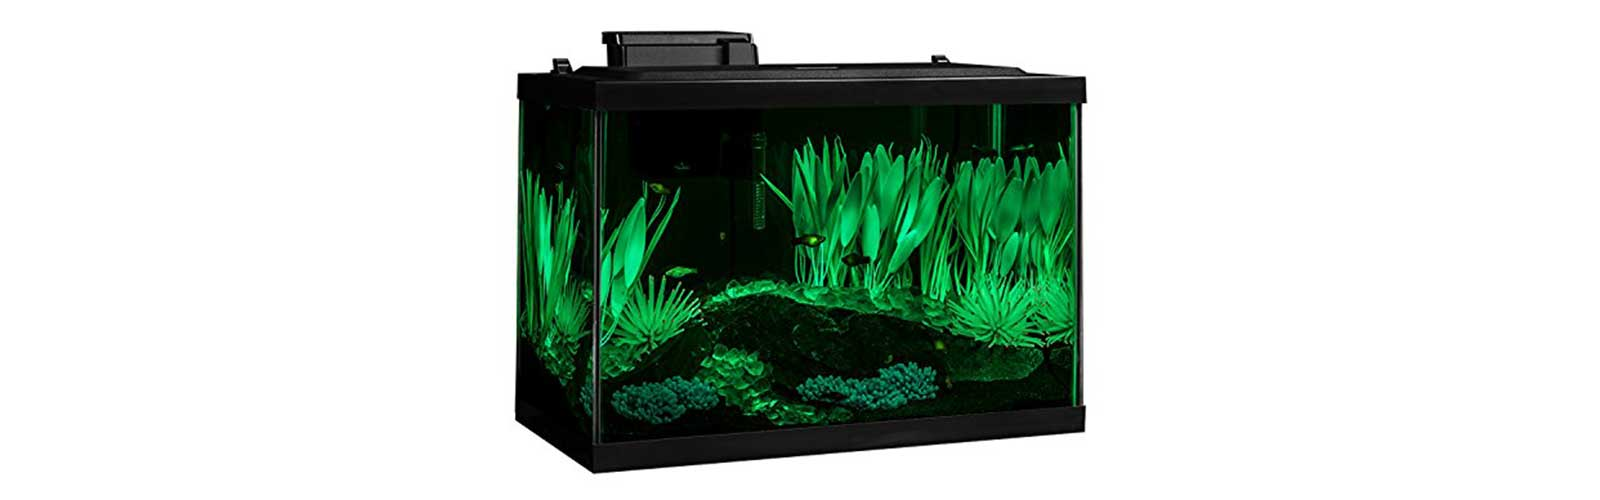 tetra-aquarium-kit-20-gallon